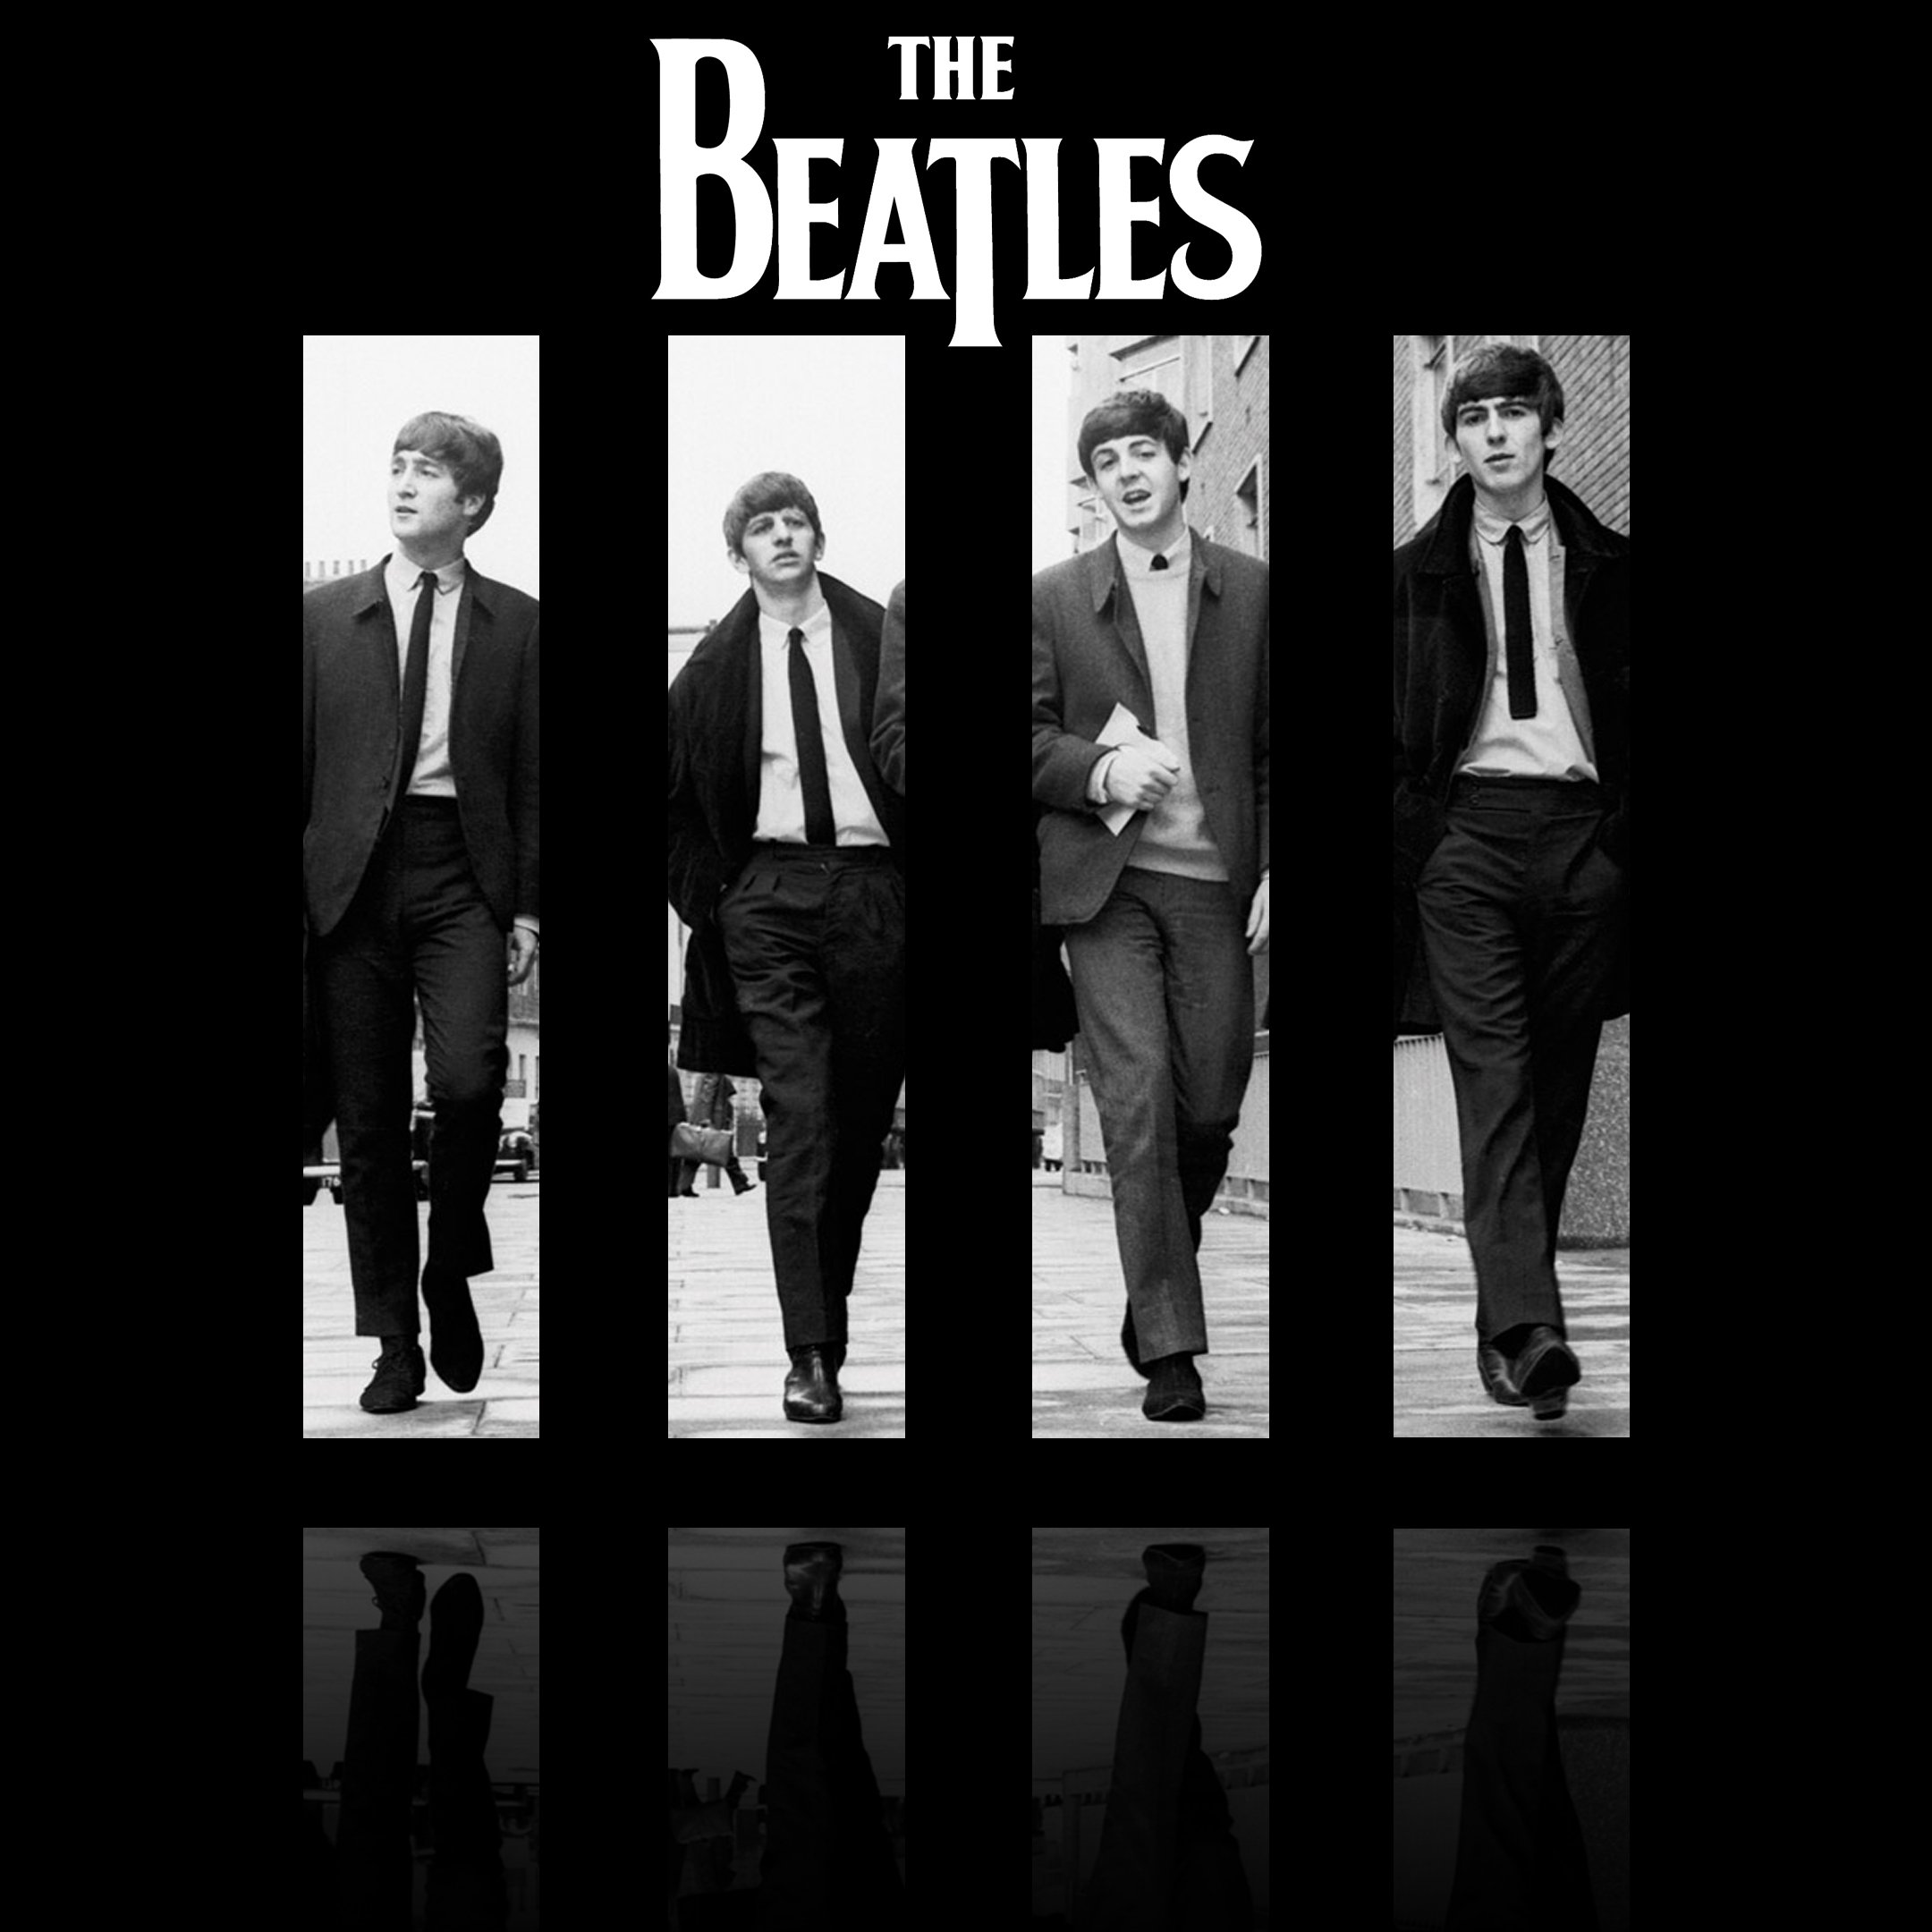 Download The Beatles IPad HD Wallpaper 4819 Full Size 2160x2160